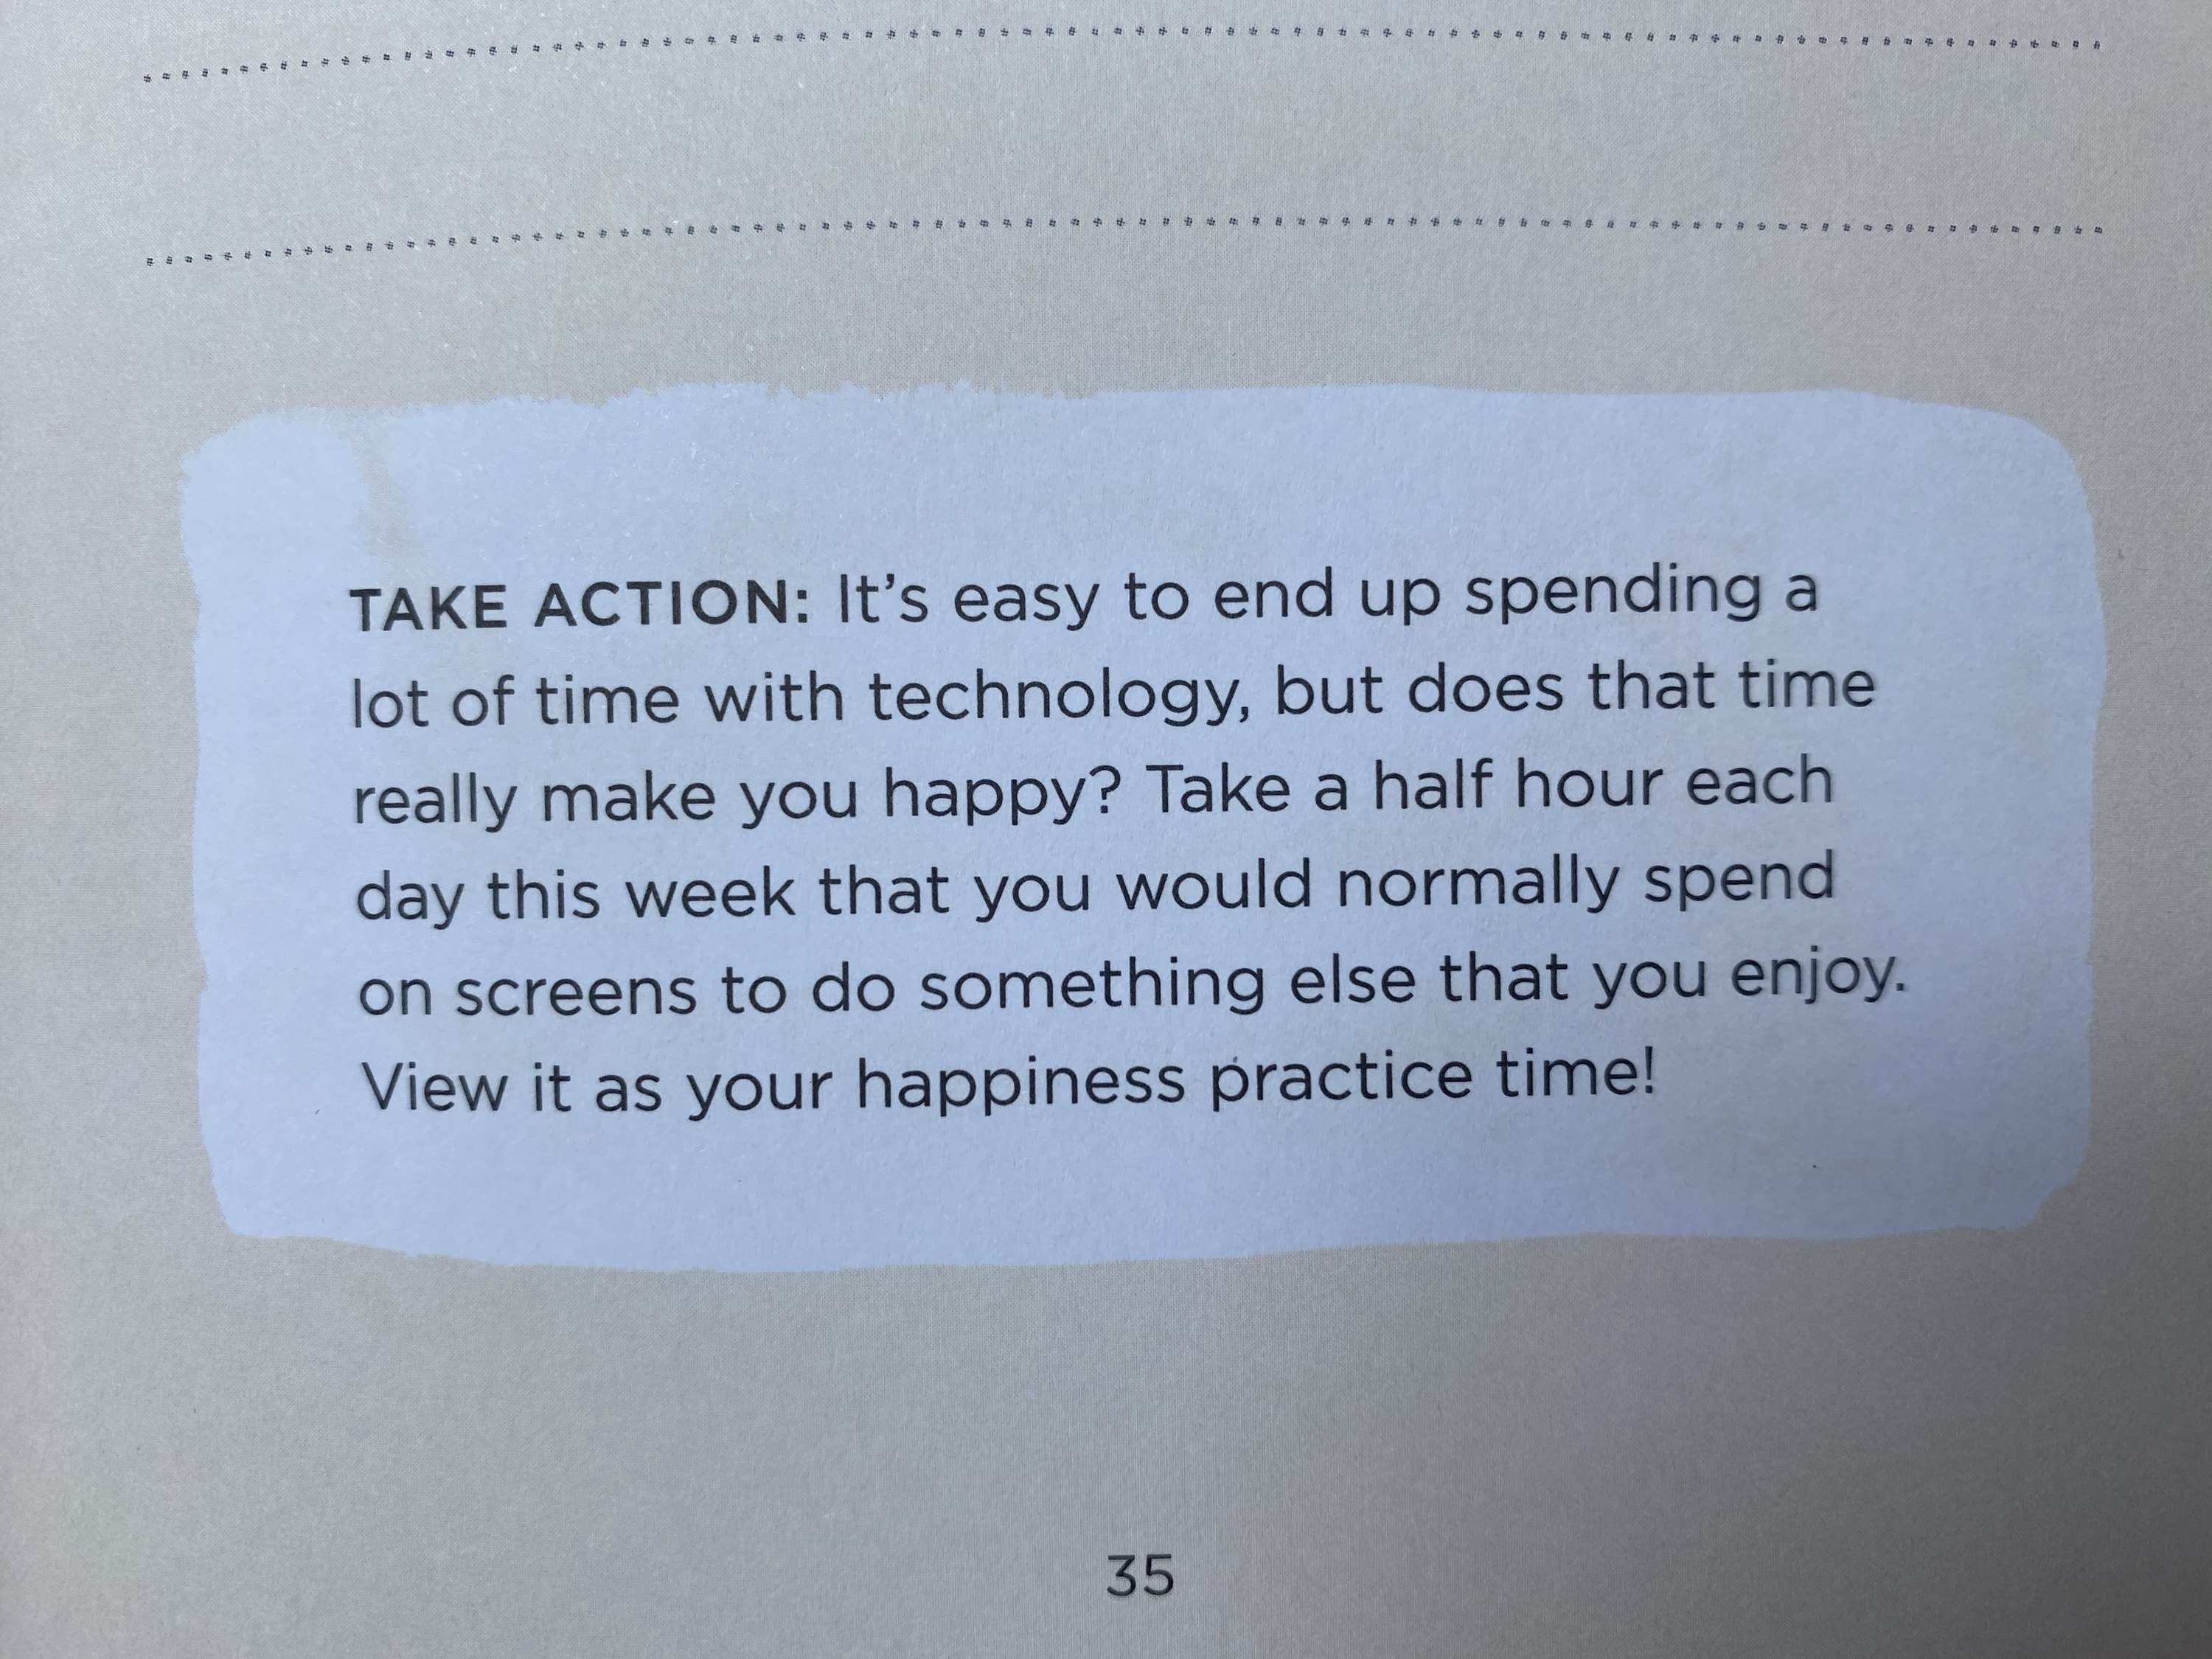 A take action page asking if time with technology really makes you happy and prompting you to take a half hour doing something off-screen